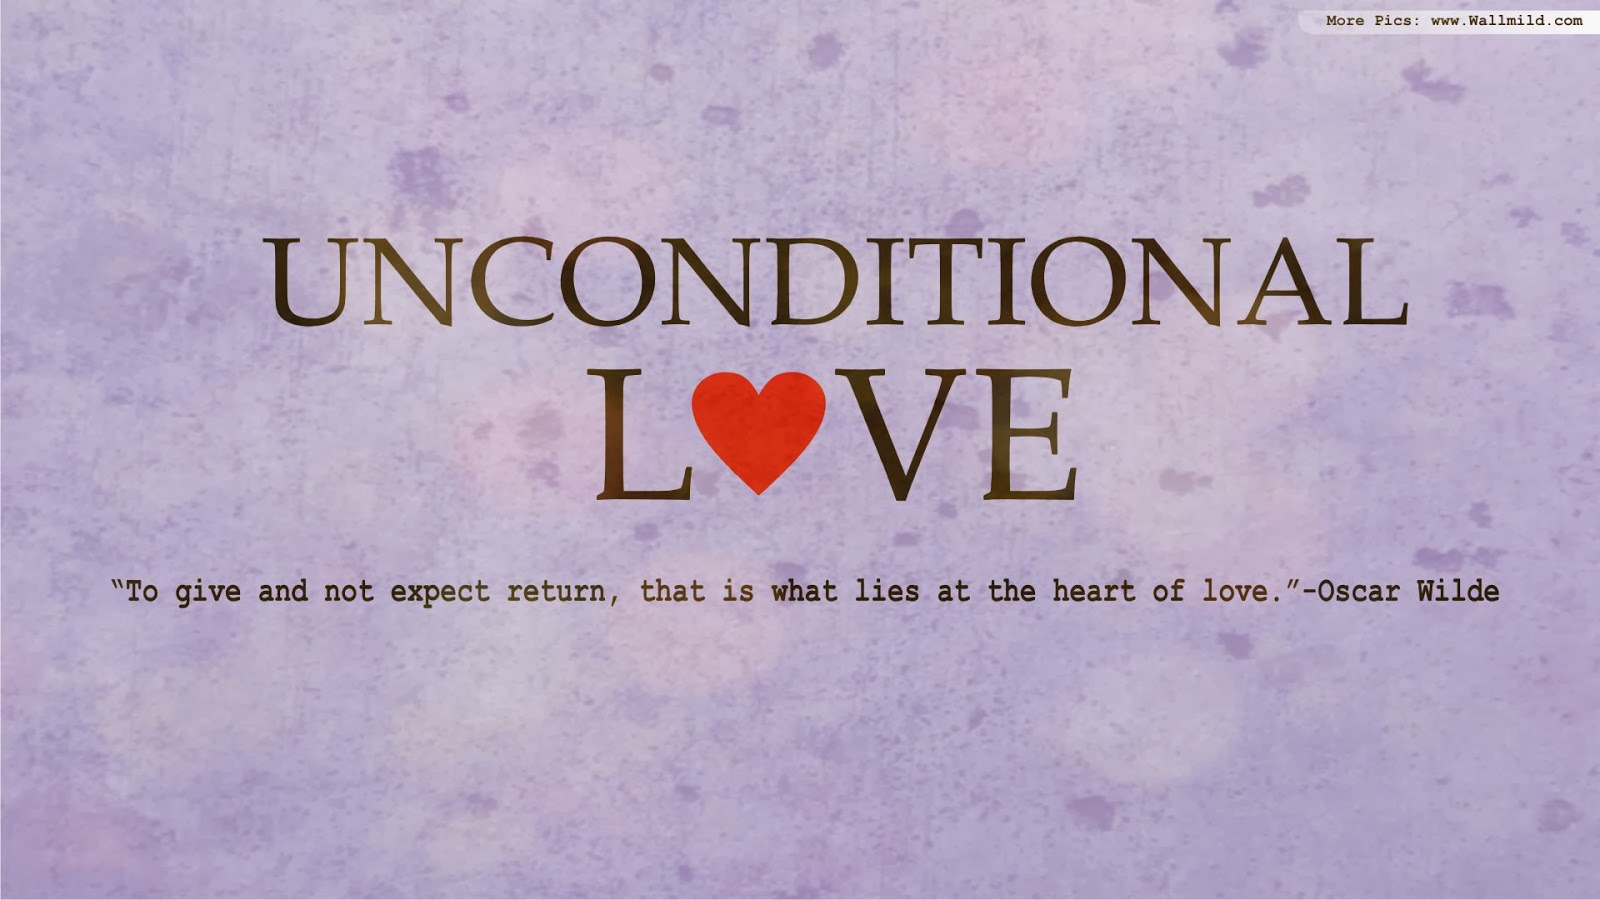 Love Quotes With Pictures : 13+ Unconditional love Quotes Love Communication